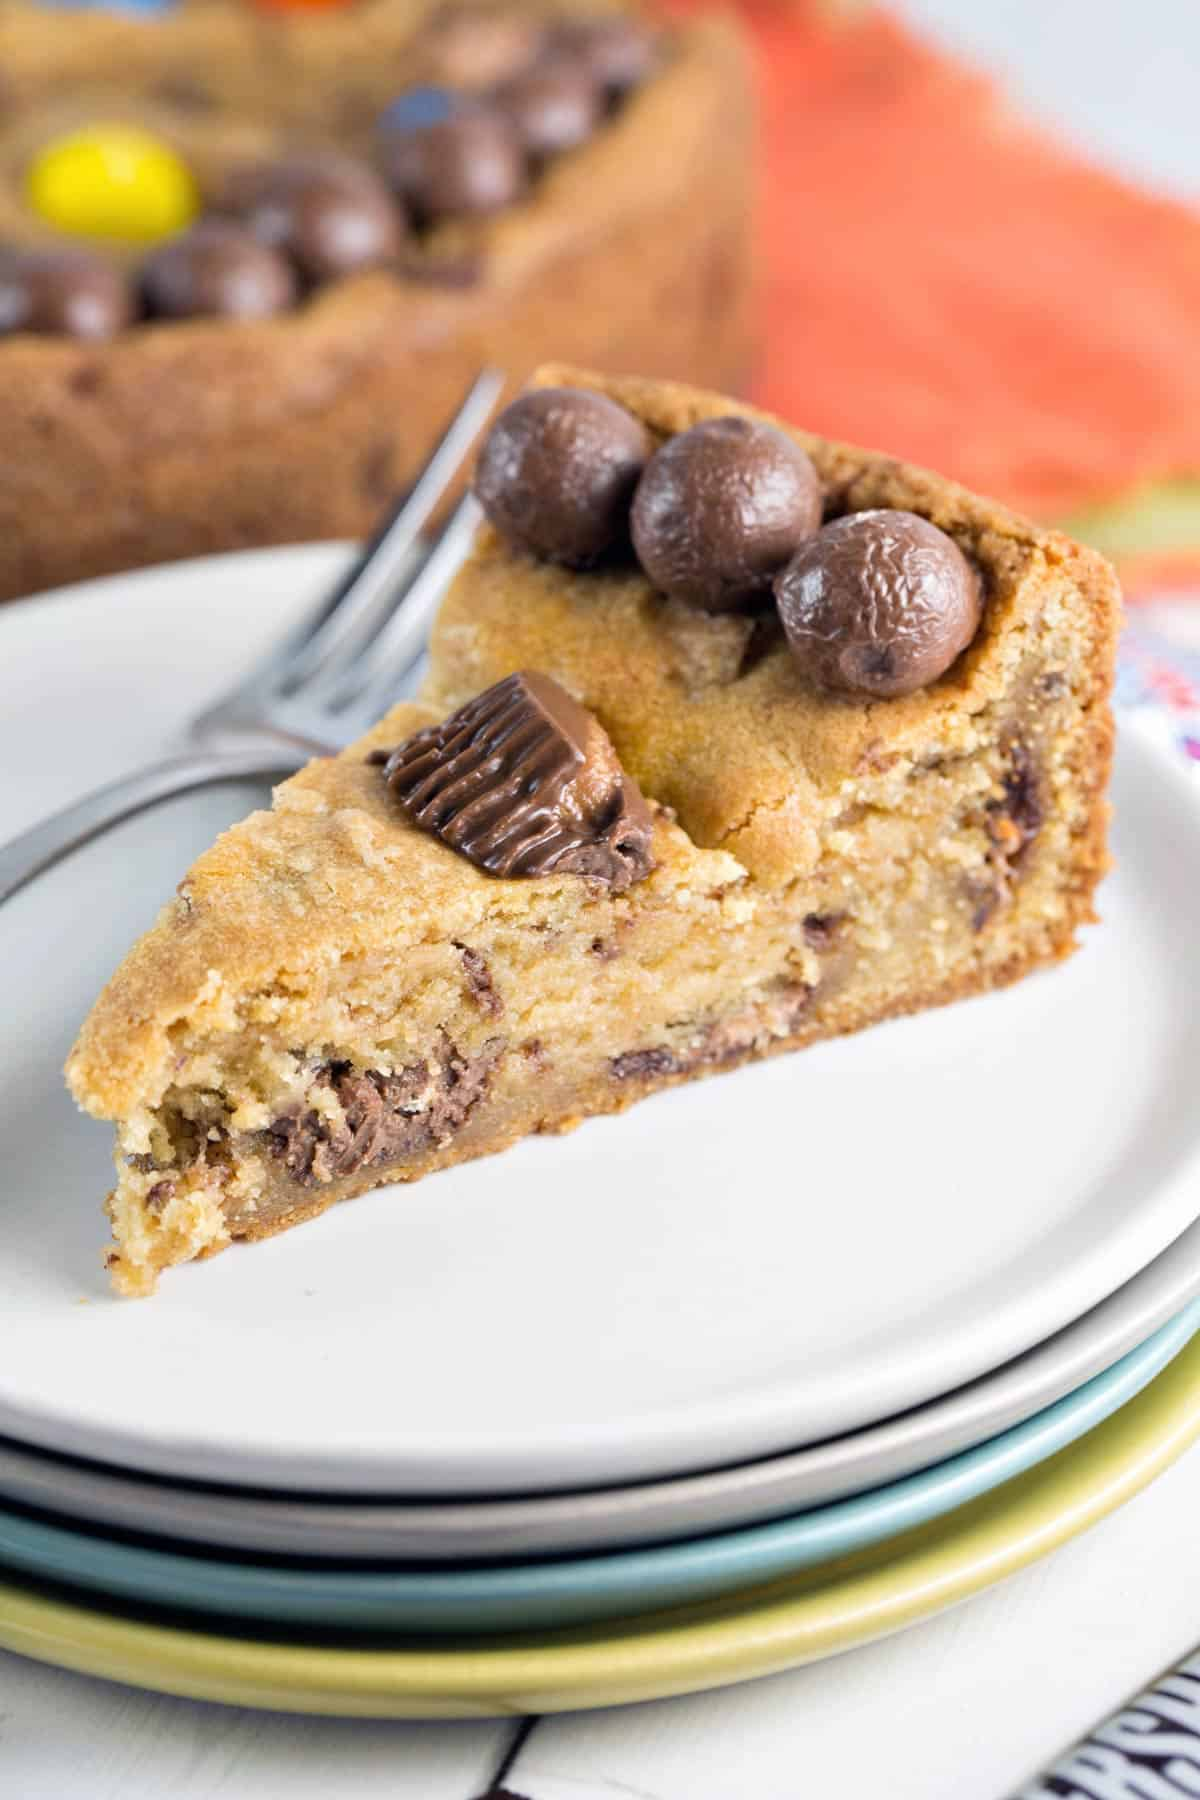 side view of a slice of candy cookie cake showing the soft inside filled with candy